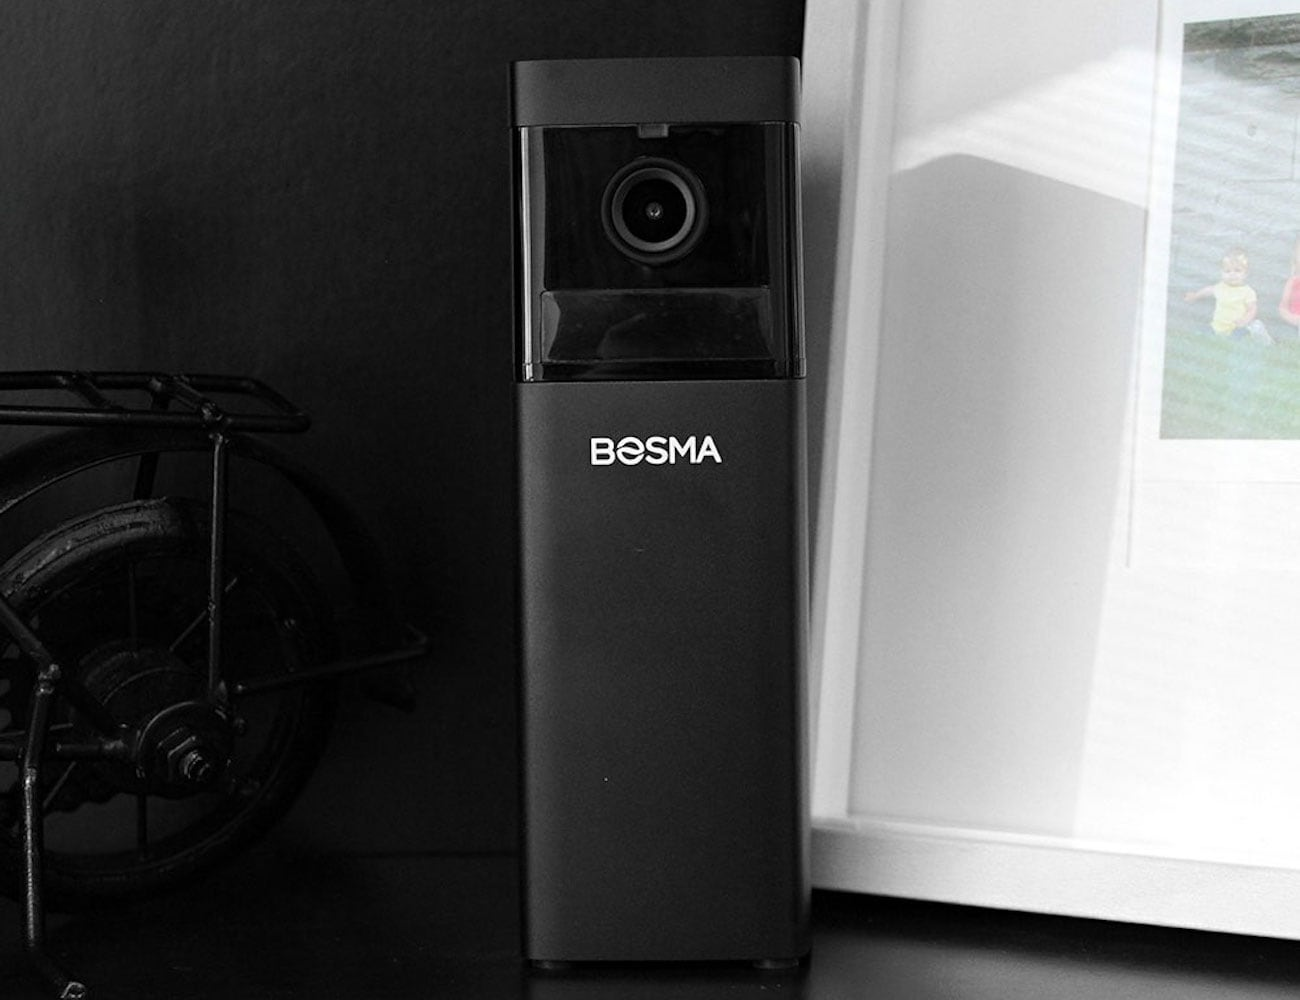 Bosma X1 Kit Wide Angle Security Camera gives you night vision in color